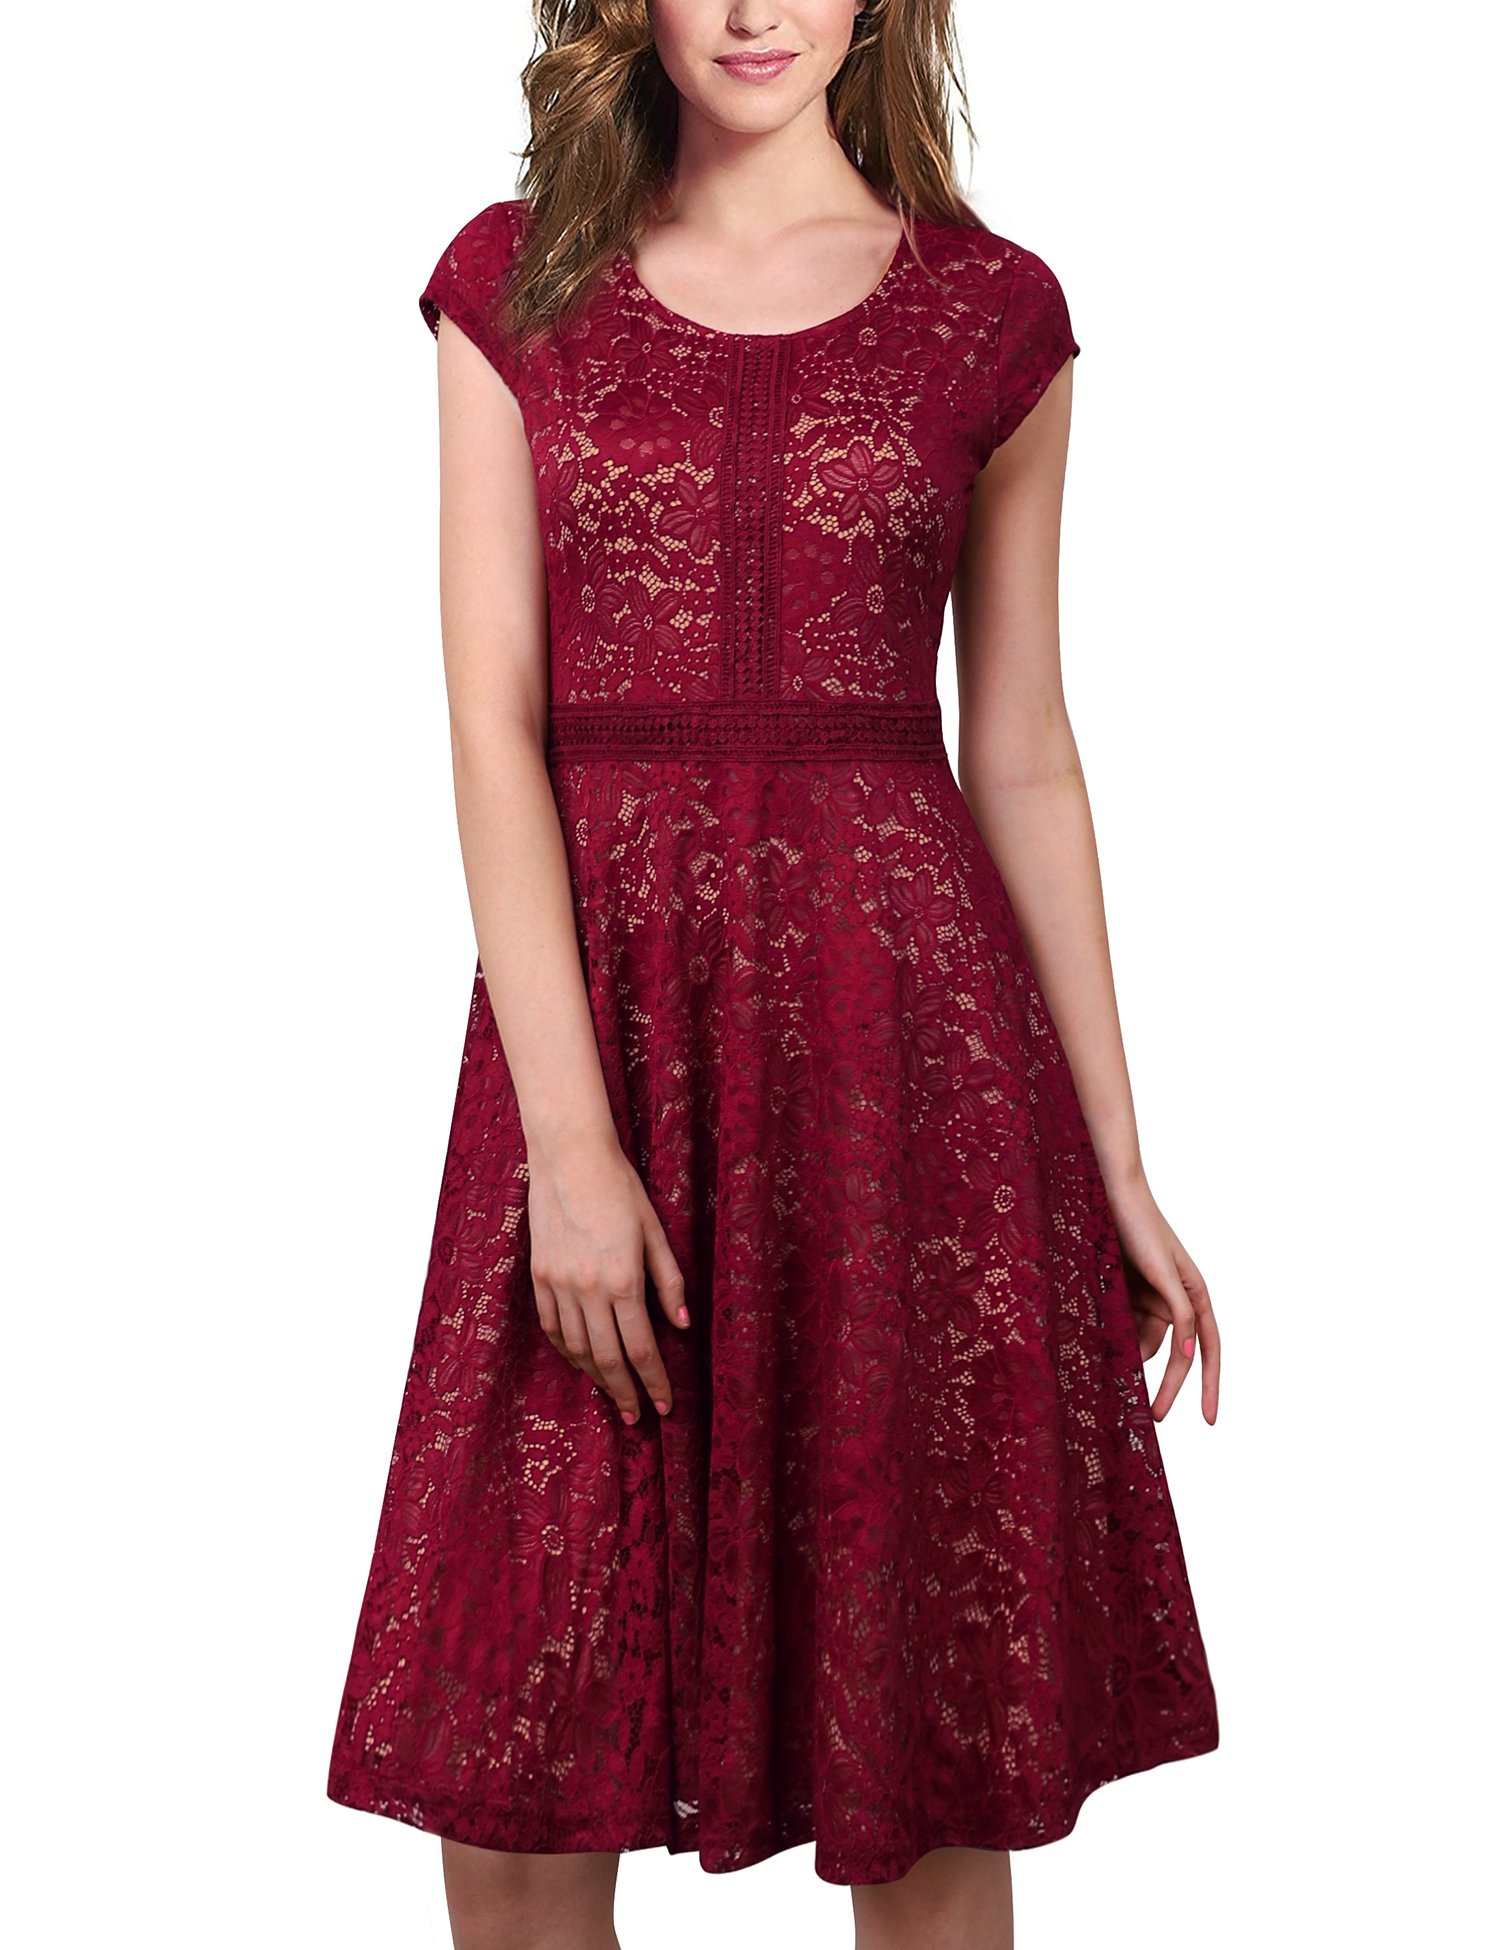 Laksmi Women'Soft Scoop Neck Lace Floral Print A Line Cocktail Party Midi Dress Wine L